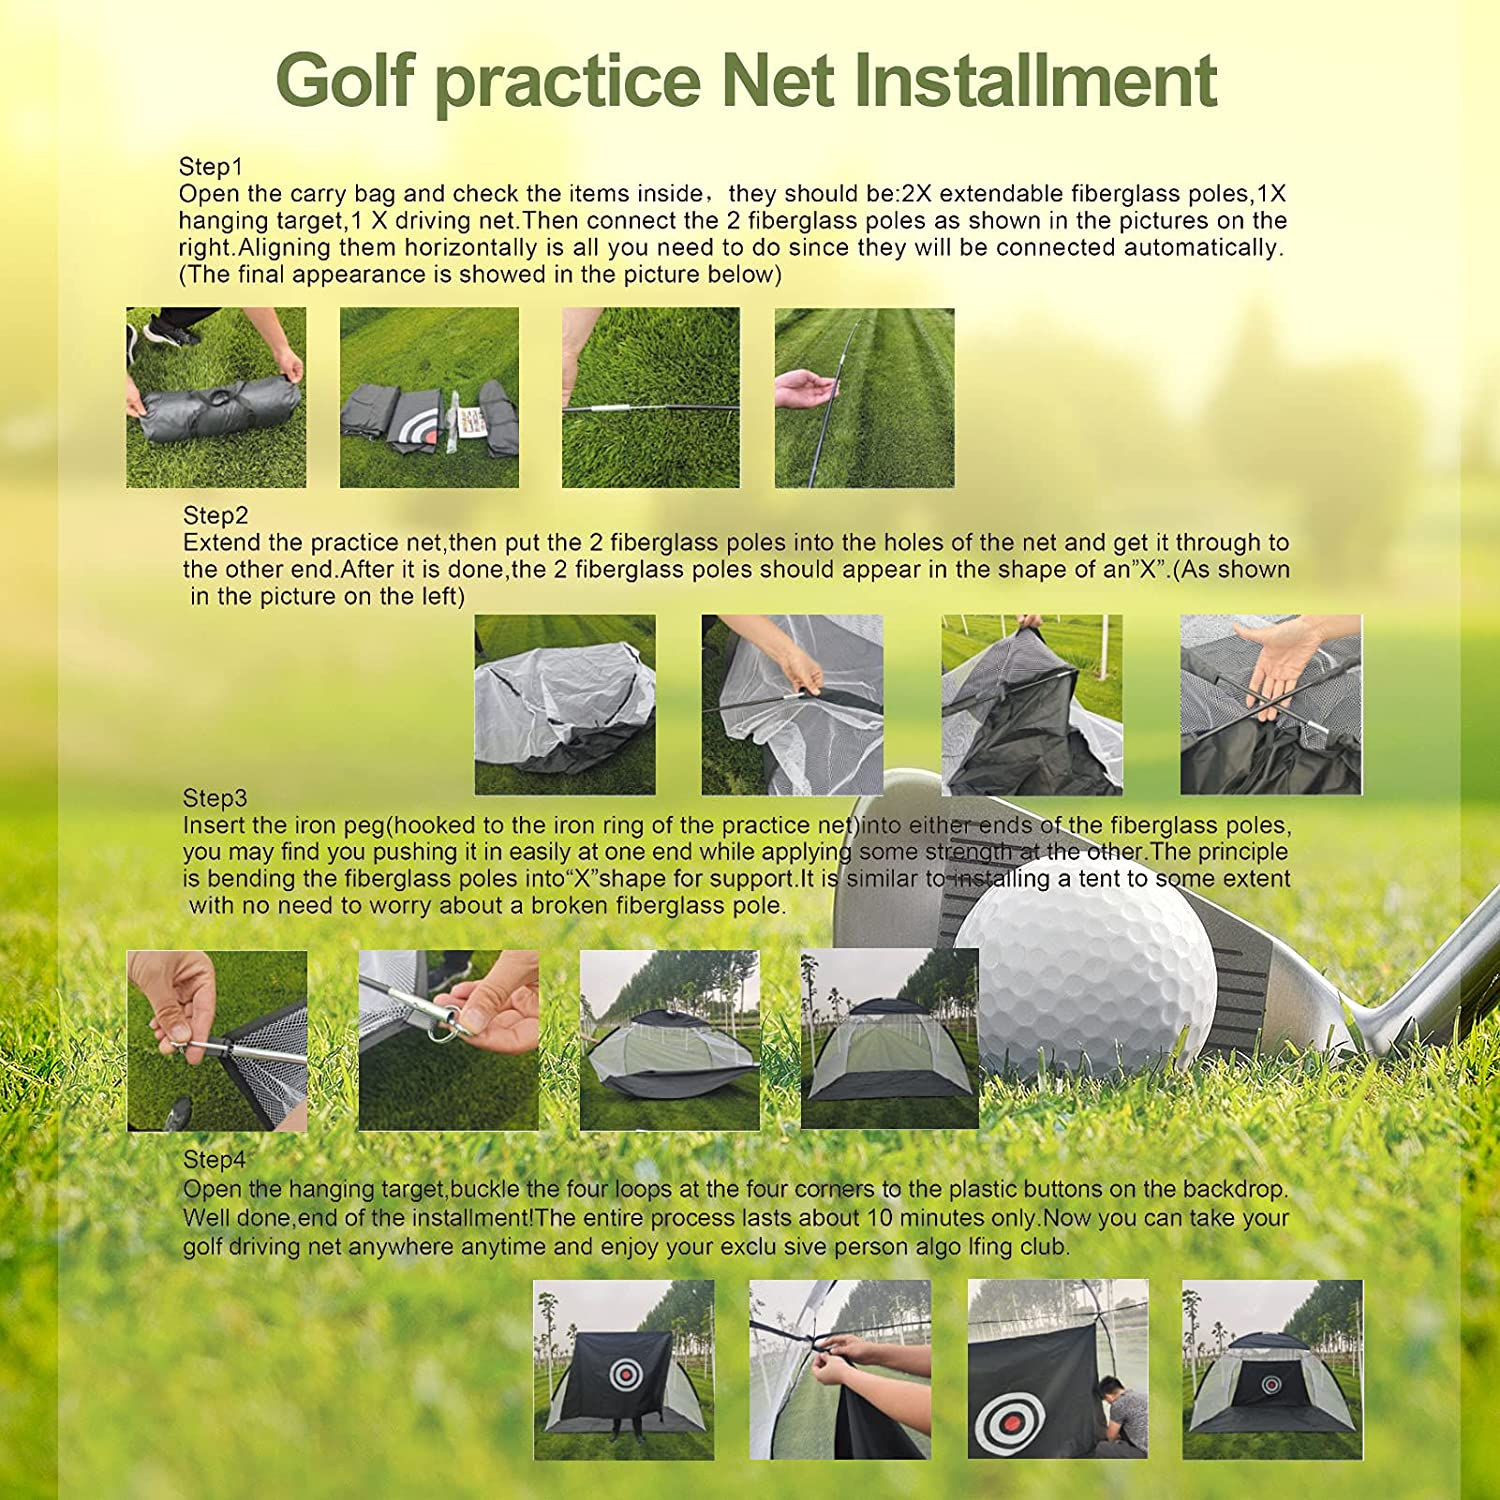 Premkid Golf Practice Net Sports Golf Hitting Net Portable Driving Net Carry Bags Large Size 10x7ft Chipping Practice Holes Golf Hitting Mat Indoor and Outdoor Backyard Training Driving Range : Sports & Outdoors